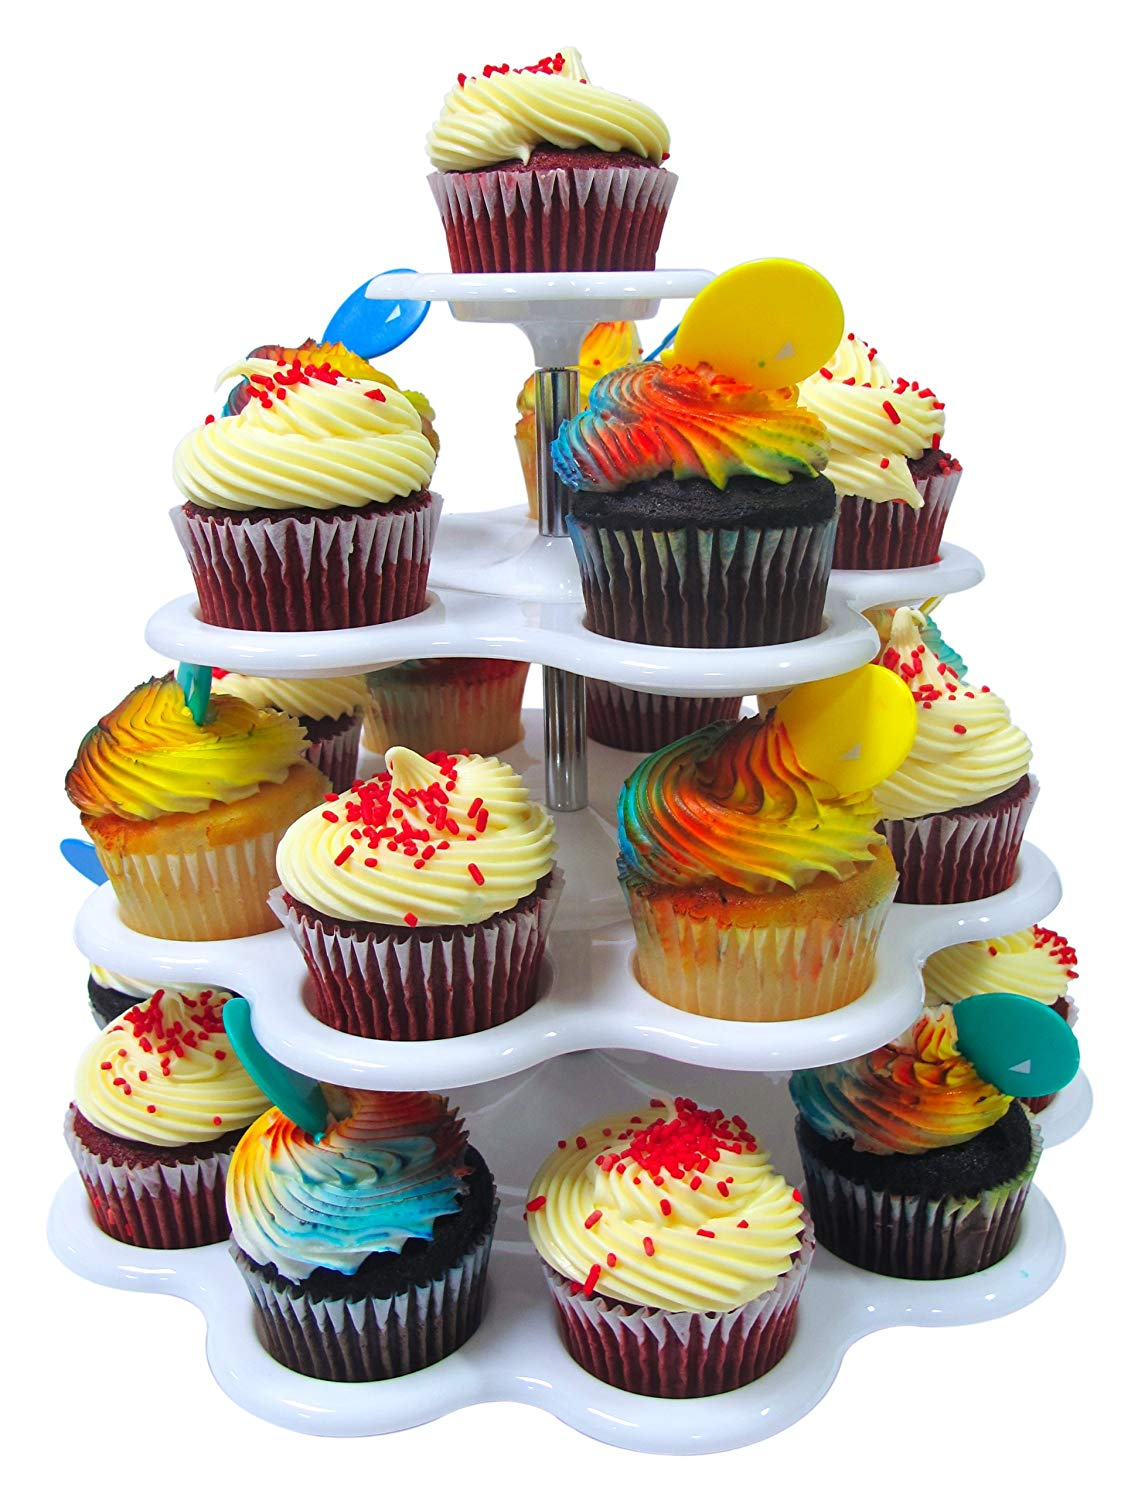 Dessert Cup Cake Stand - 4 Tier Plastic Cupcake Wedding Birthday Party Display